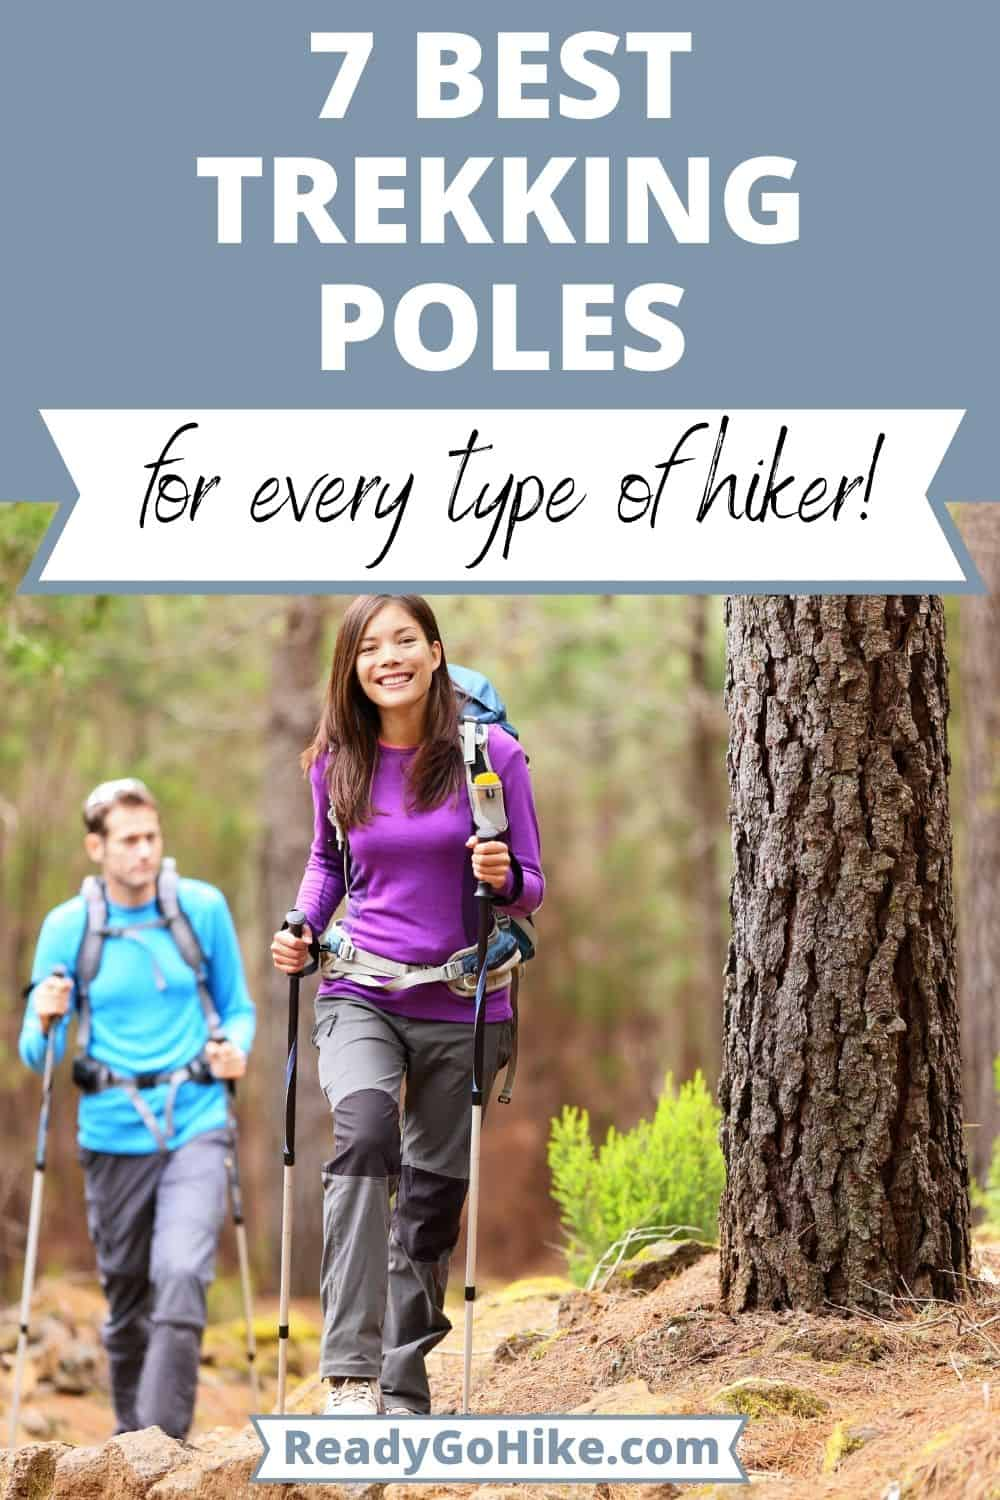 Man and woman using hiking poles in forest with text overlay 7 Best Trekking Poles